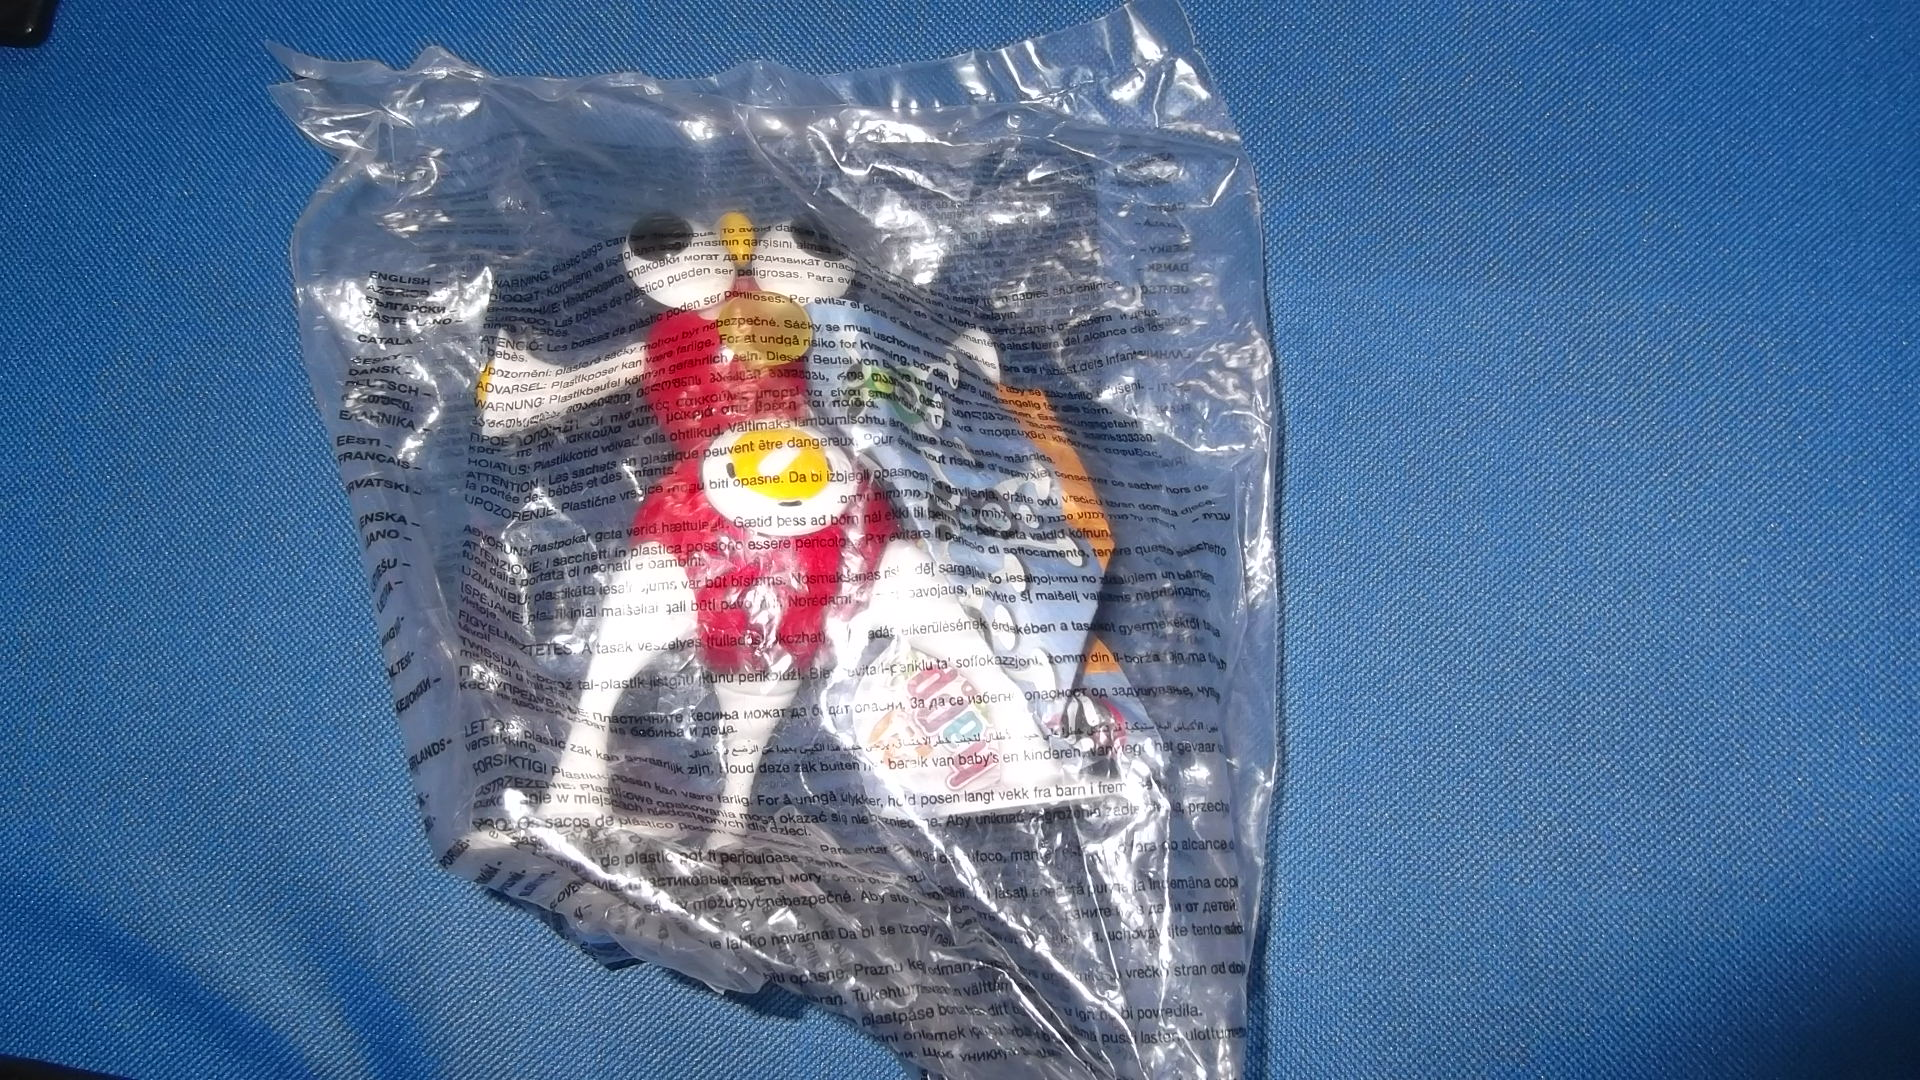 McDonalds IZ The Robot Red & White Robot Toy From 2006 New